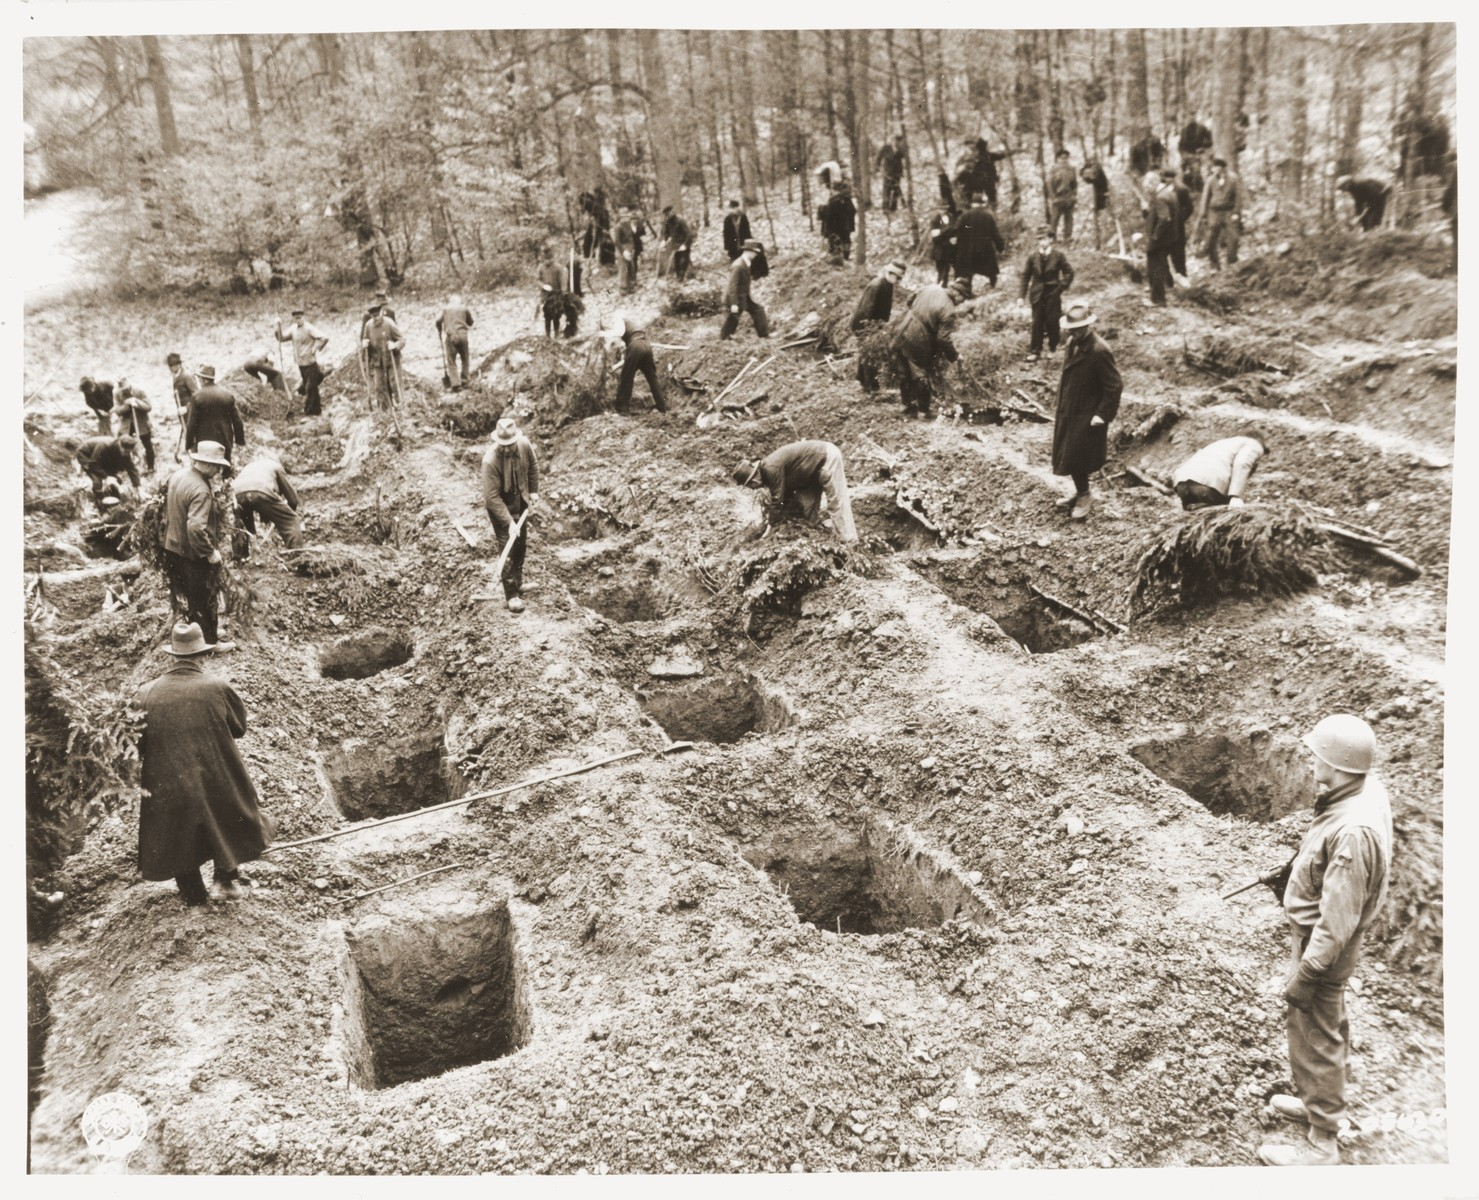 Under the supervision of an American soldier, German civilians from Suttrop dig graves for the bodies of 57 Russians, including women and one baby, exhumed from a mass grave outside the town.    The victims were forced to dig their own grave and then were shot by SS troops six weeks before the arrival of American troops.  On May 3, 1945, the 95th Infantry Division of the U.S. Ninth Army arrived in Suttrop and were informed by locals of the mass grave.  American troops forced the townspeople to exhume the grave after which Russian displaced persons in the area identified the bodies.  The victims were reburied in individual graves, and a U.S. Army chaplain conducted burial services.  Russians remaining in the area placed wreaths on the graves.